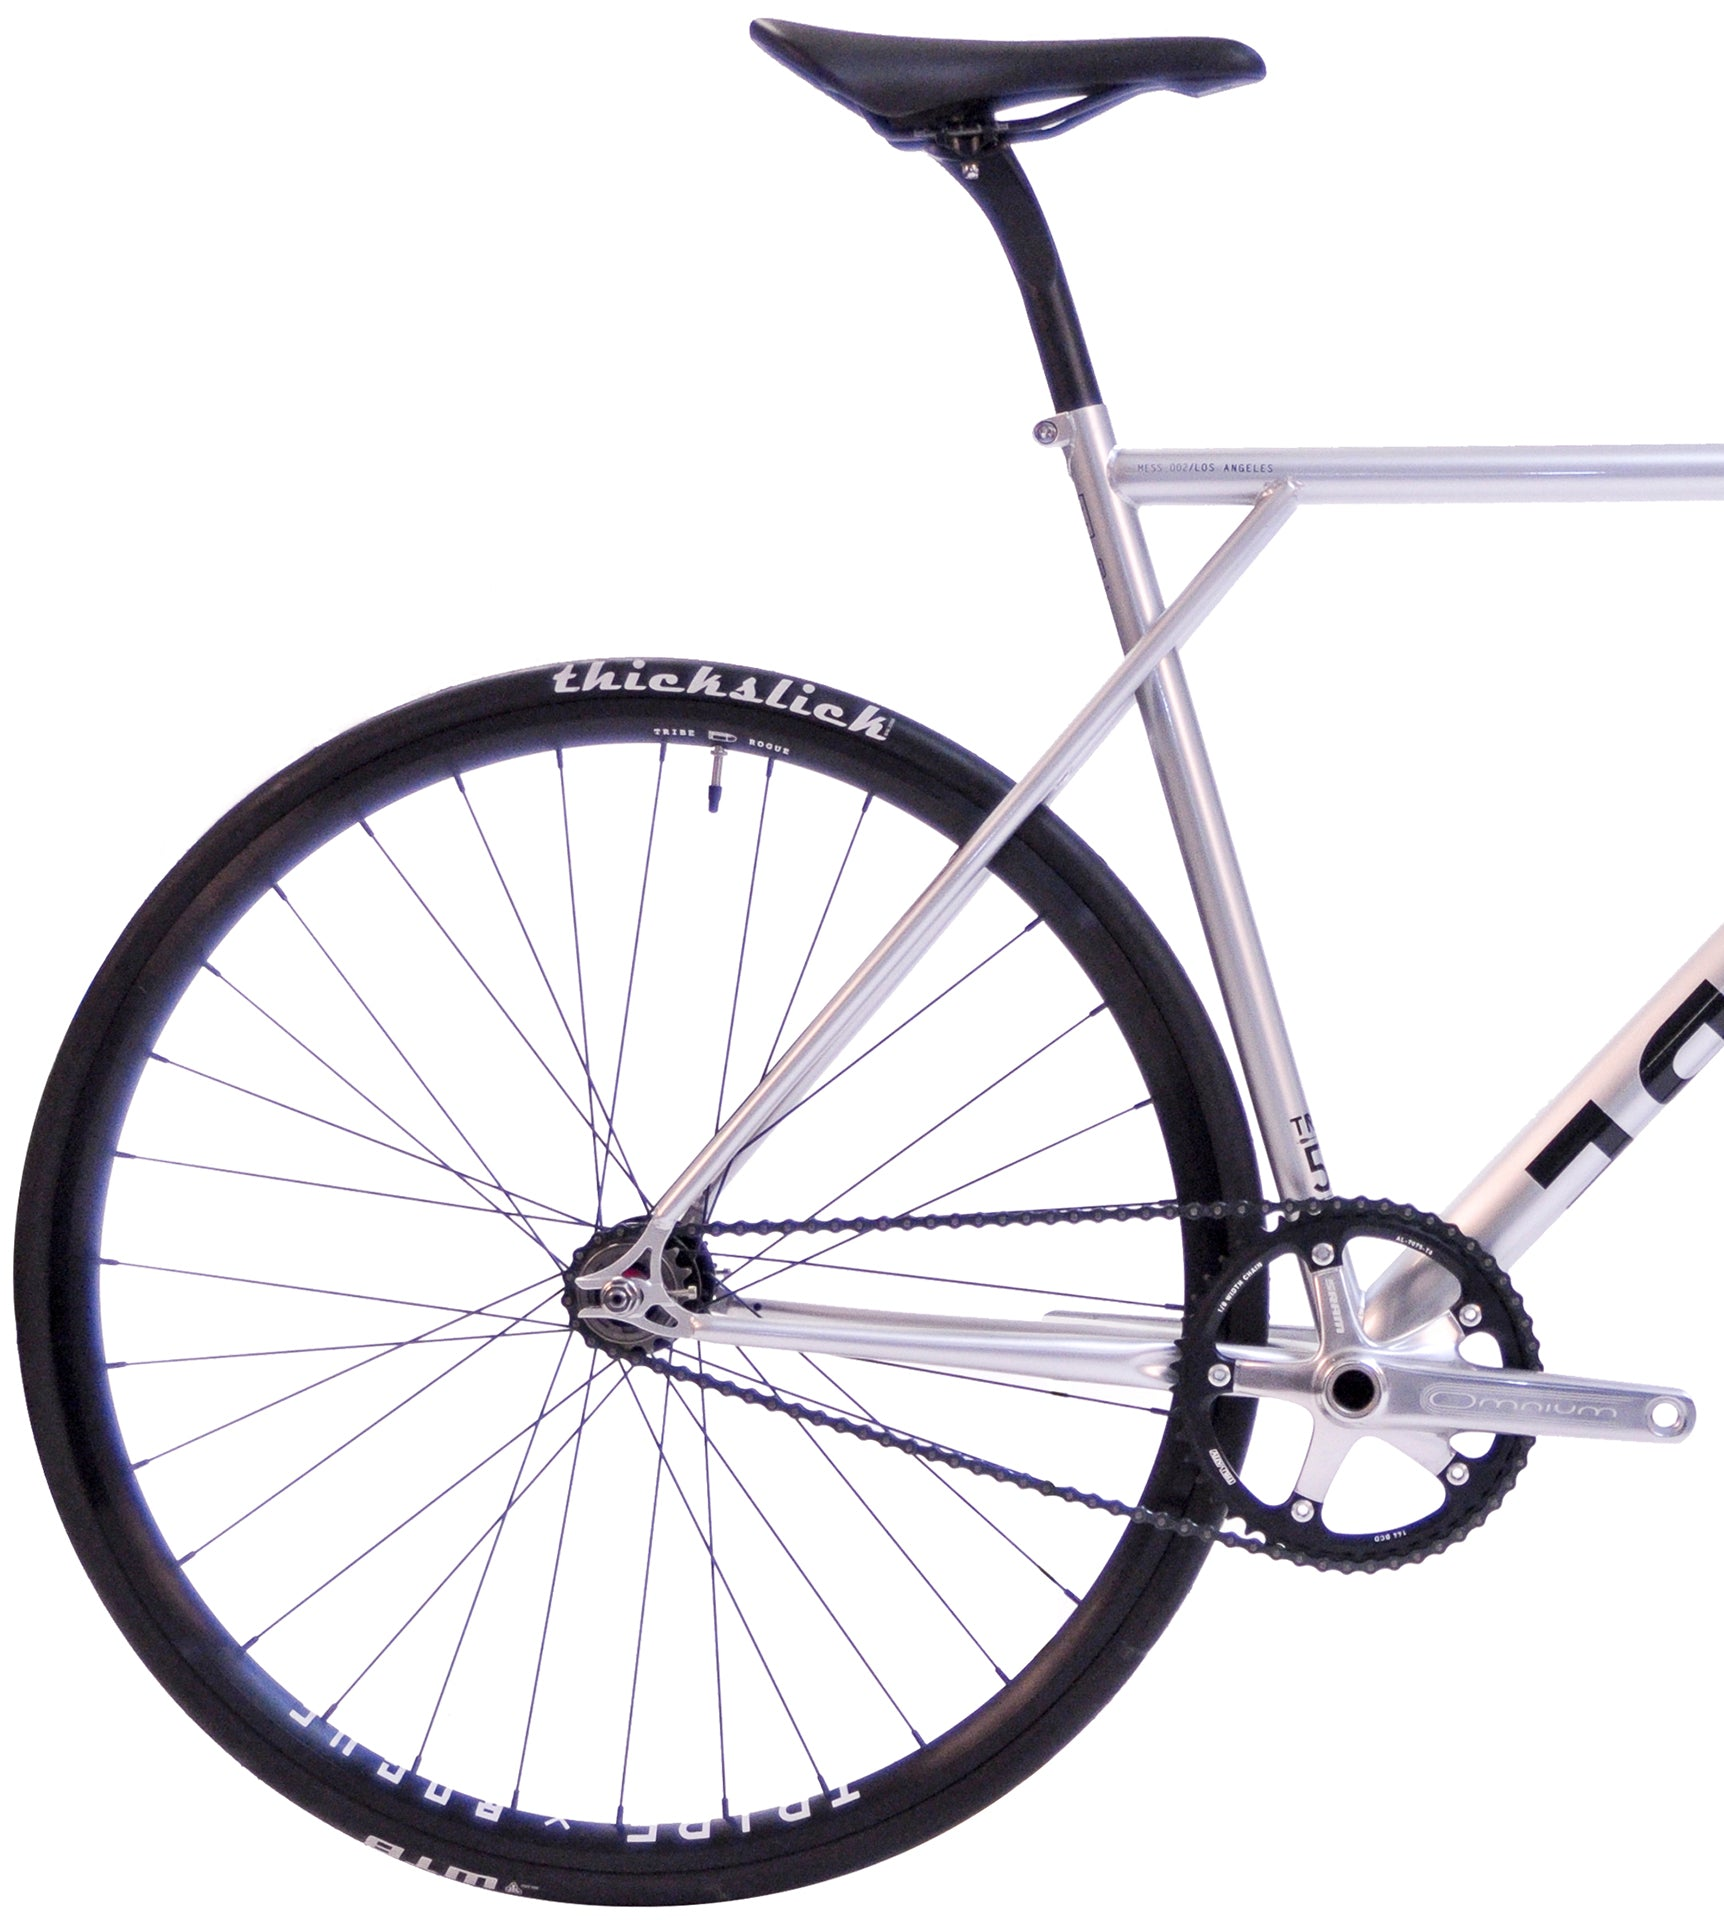 Messenger Series Tribe Bicycle Co